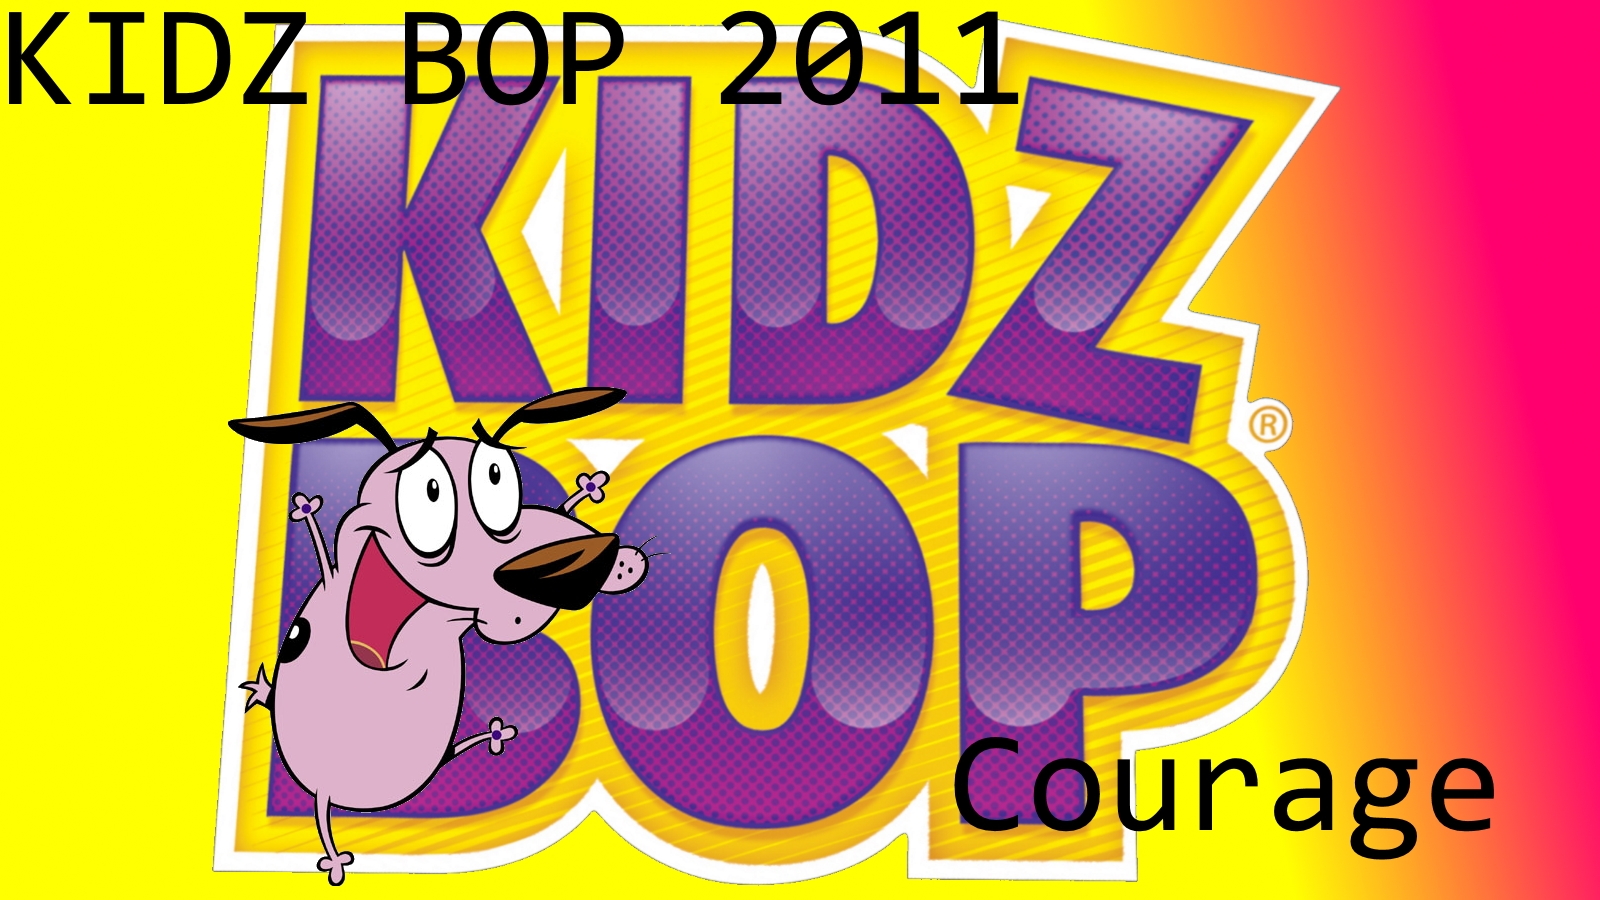 Courage The Kidz Bop Kid Wallpaper Courage The Cowardly Dog